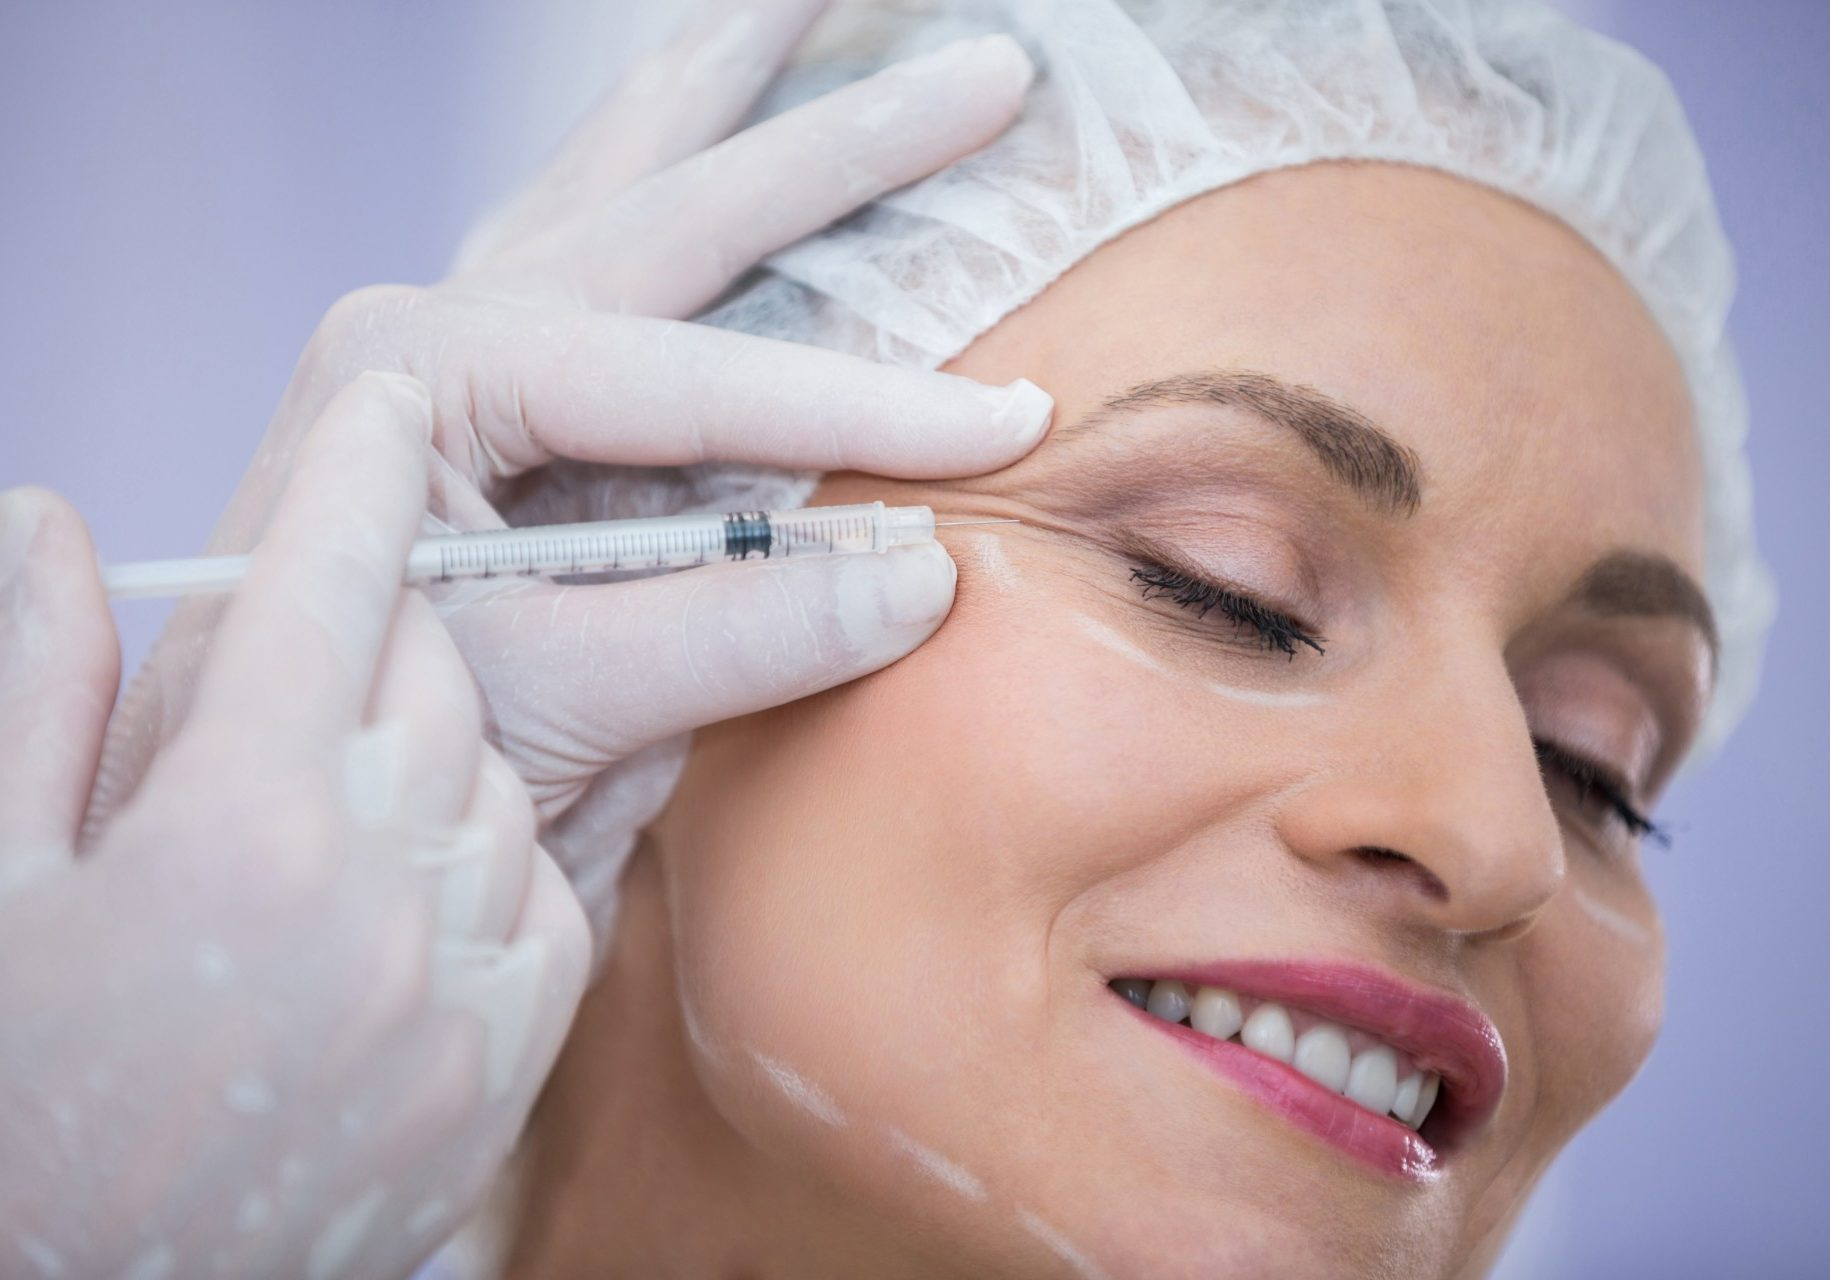 woman-with-marked-face-receiving-botox-injection-min